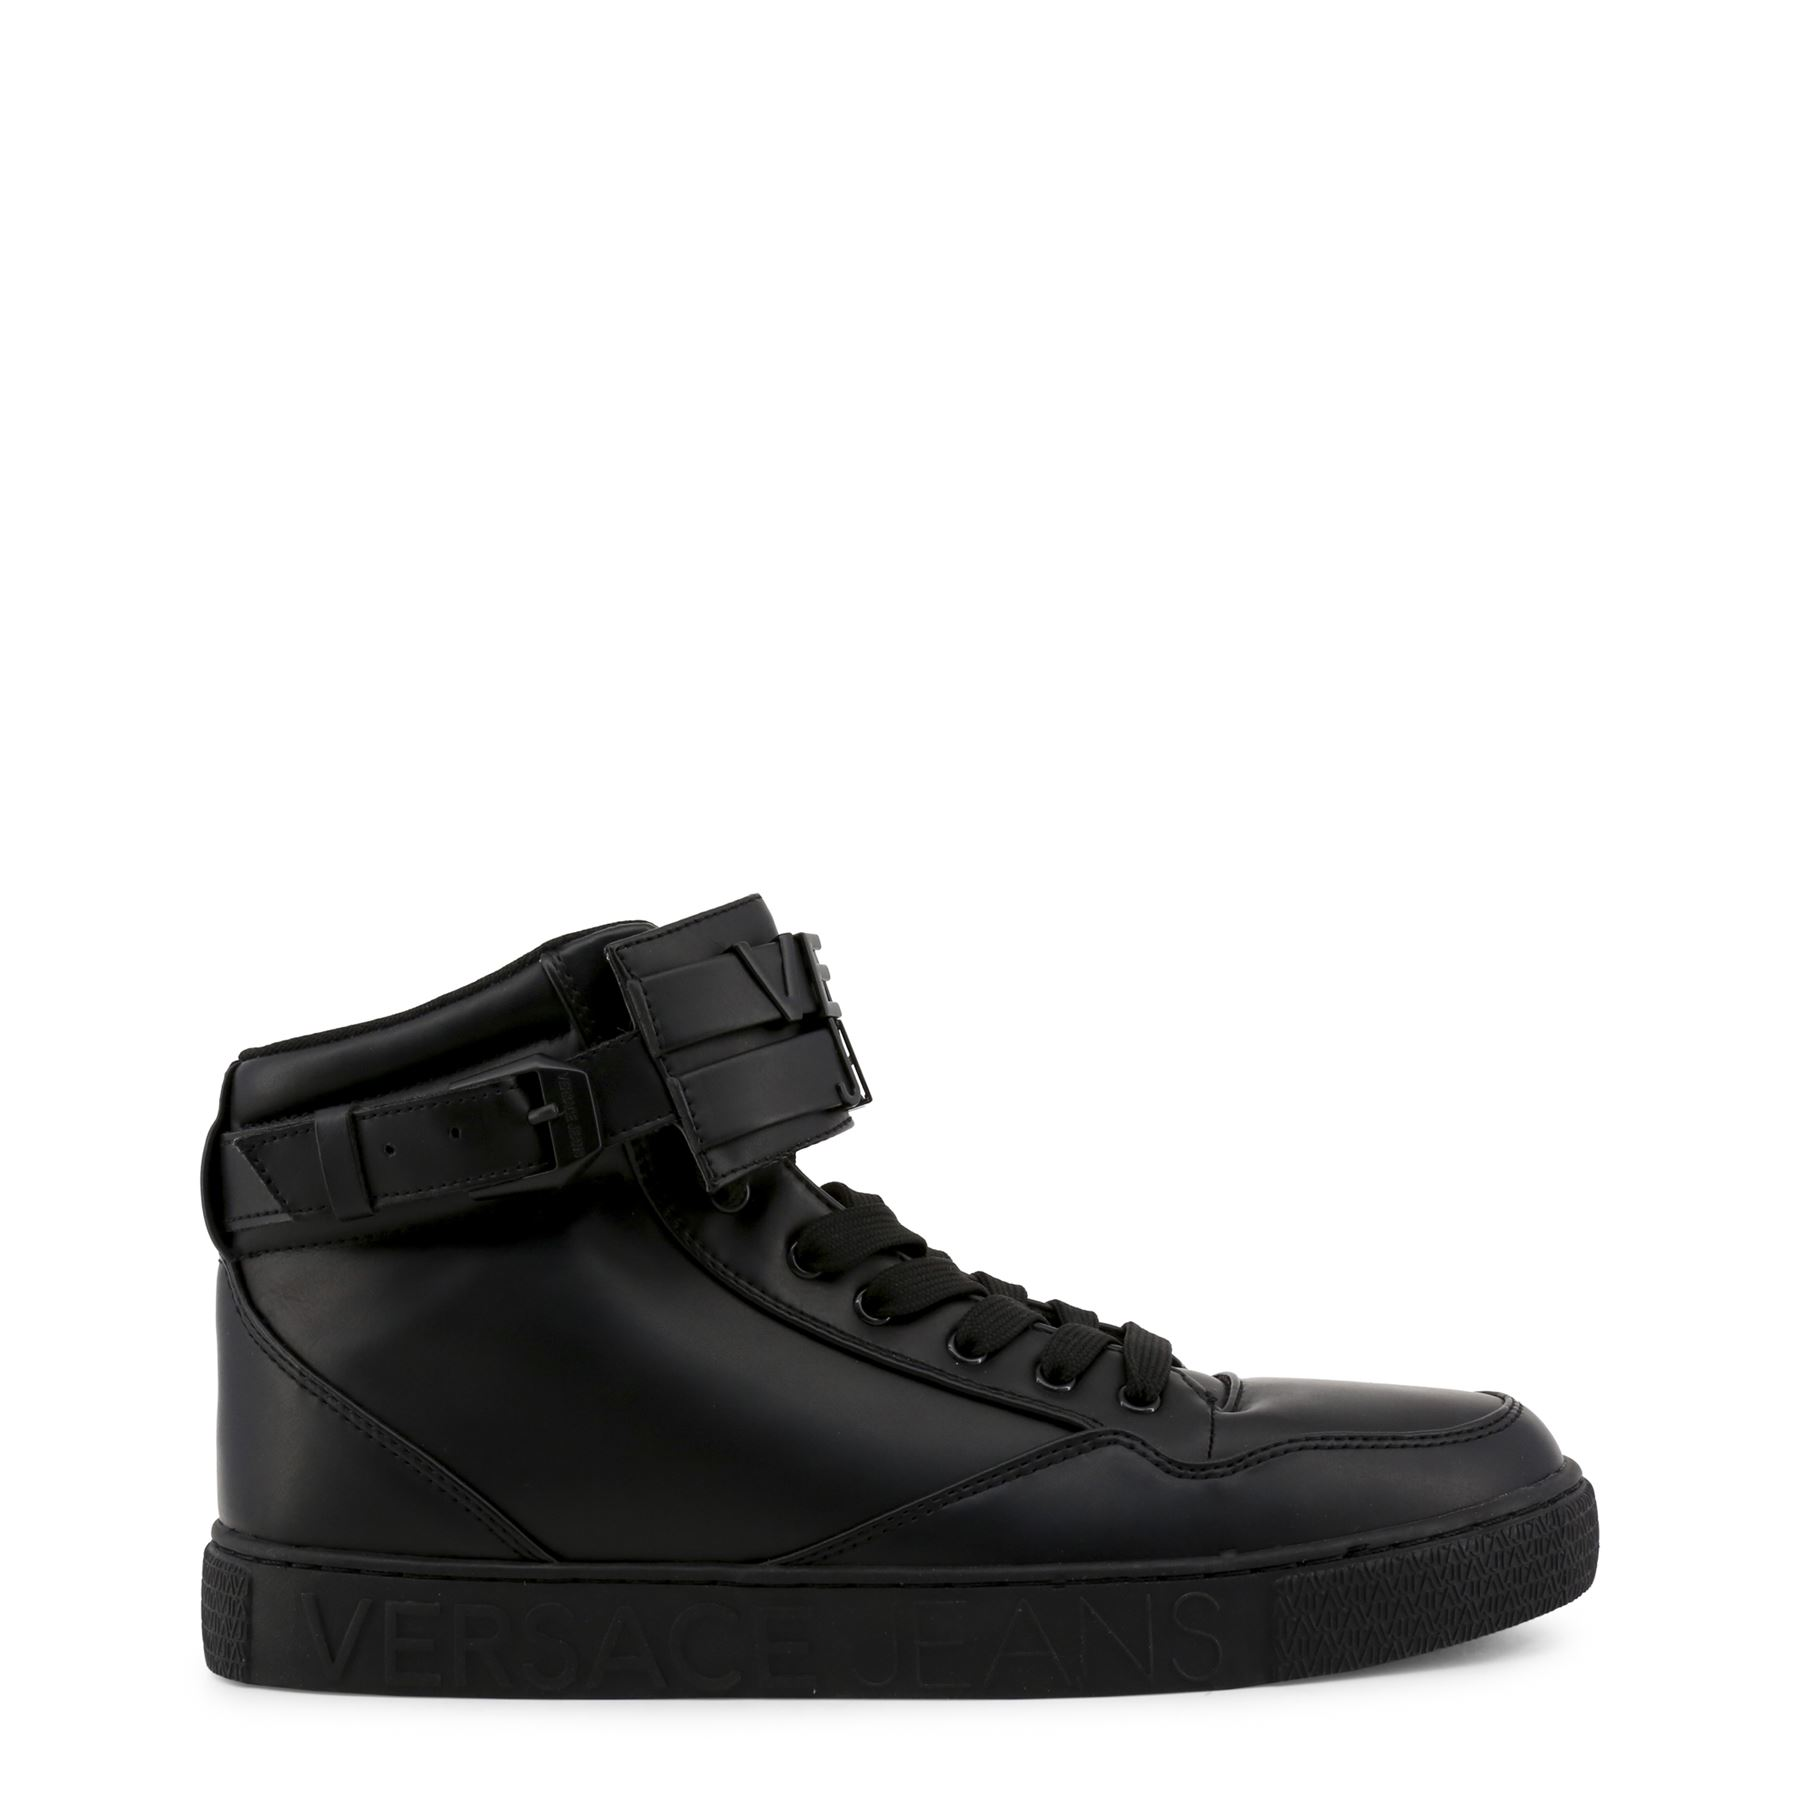 cc15a0923f2d Details about Versace Jeans Men s Casual Black High-Top Sneakers Leather  Lace-Up